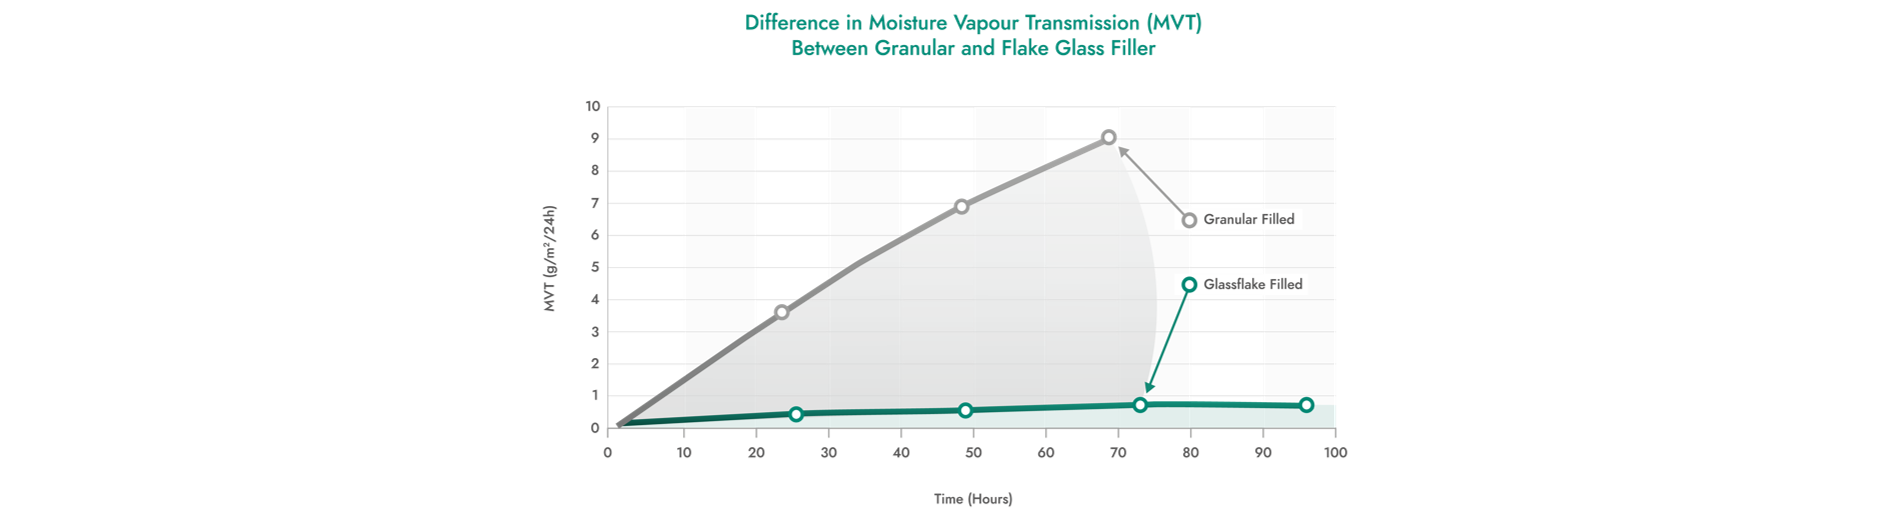 Graph Data on Moisture Vapour Transmission - Glassflake or Granular Filler